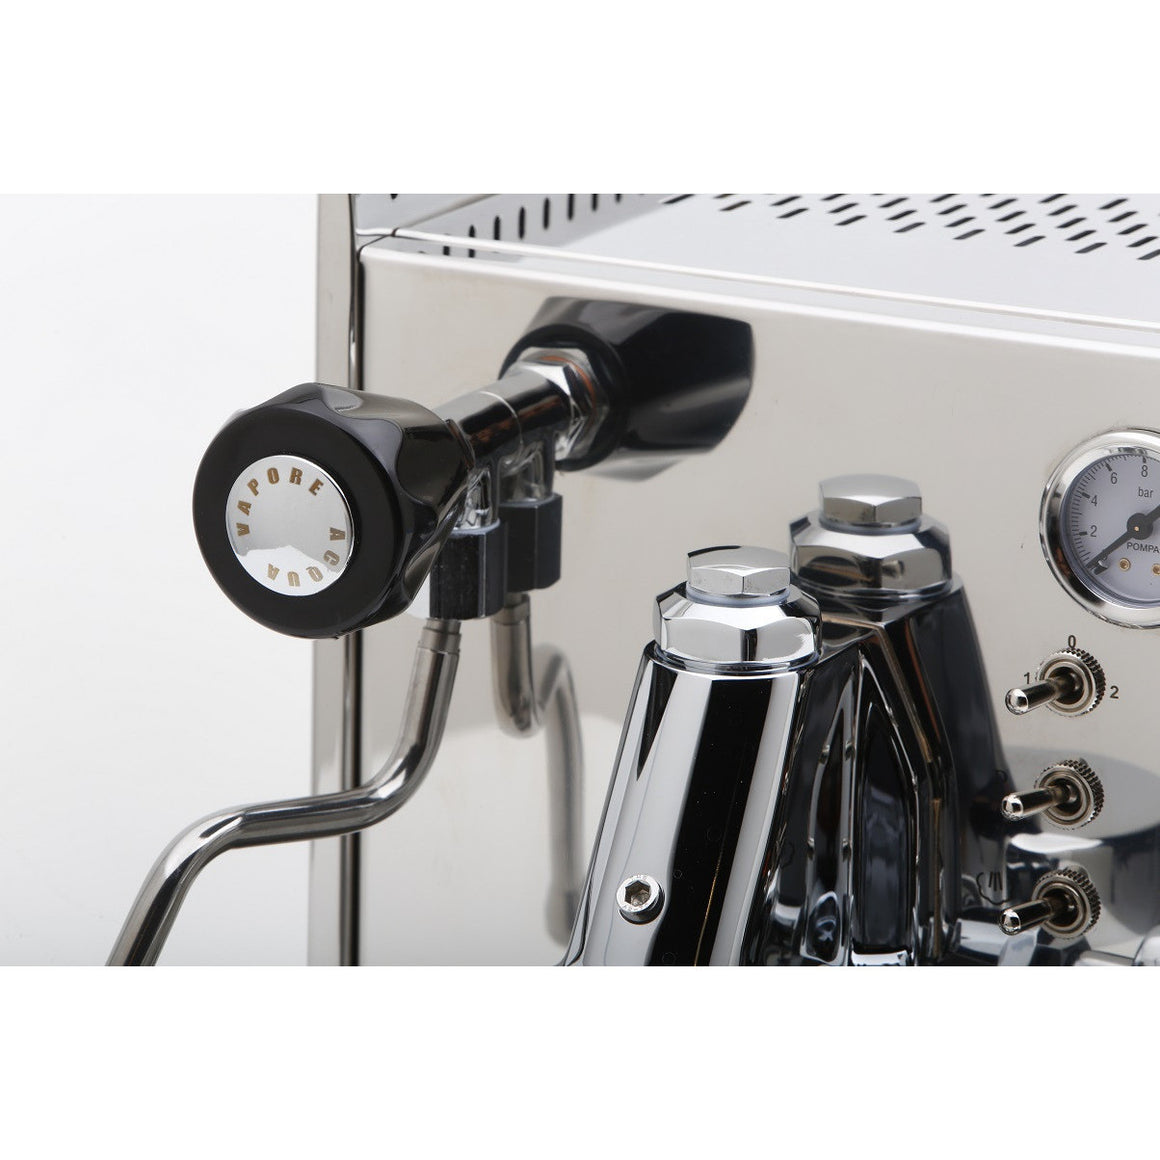 QUICK MILL ALEXIA EVO ESPRESSO MACHINE - My Espresso Shop - 3